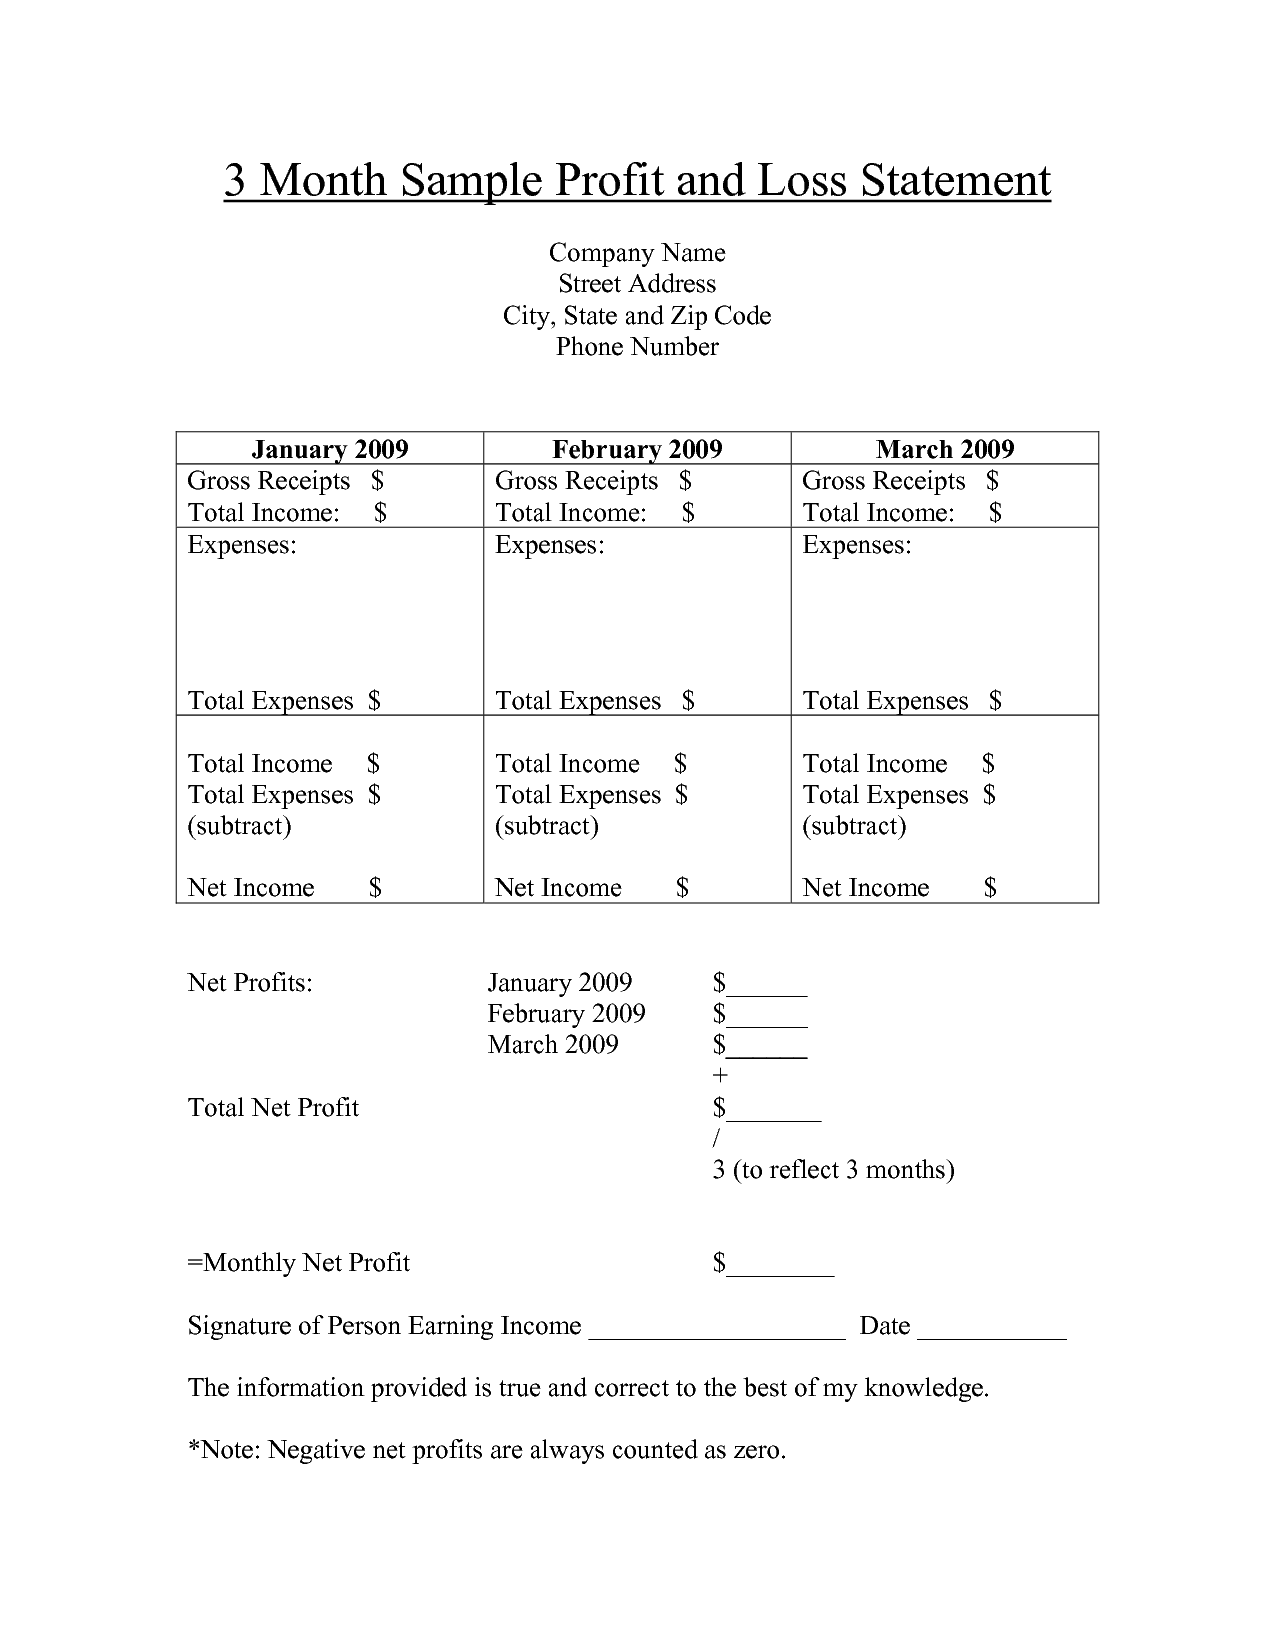 Free Printable Profit and Loss Statement Form for Home Care Bing – Free Profit and Loss Form